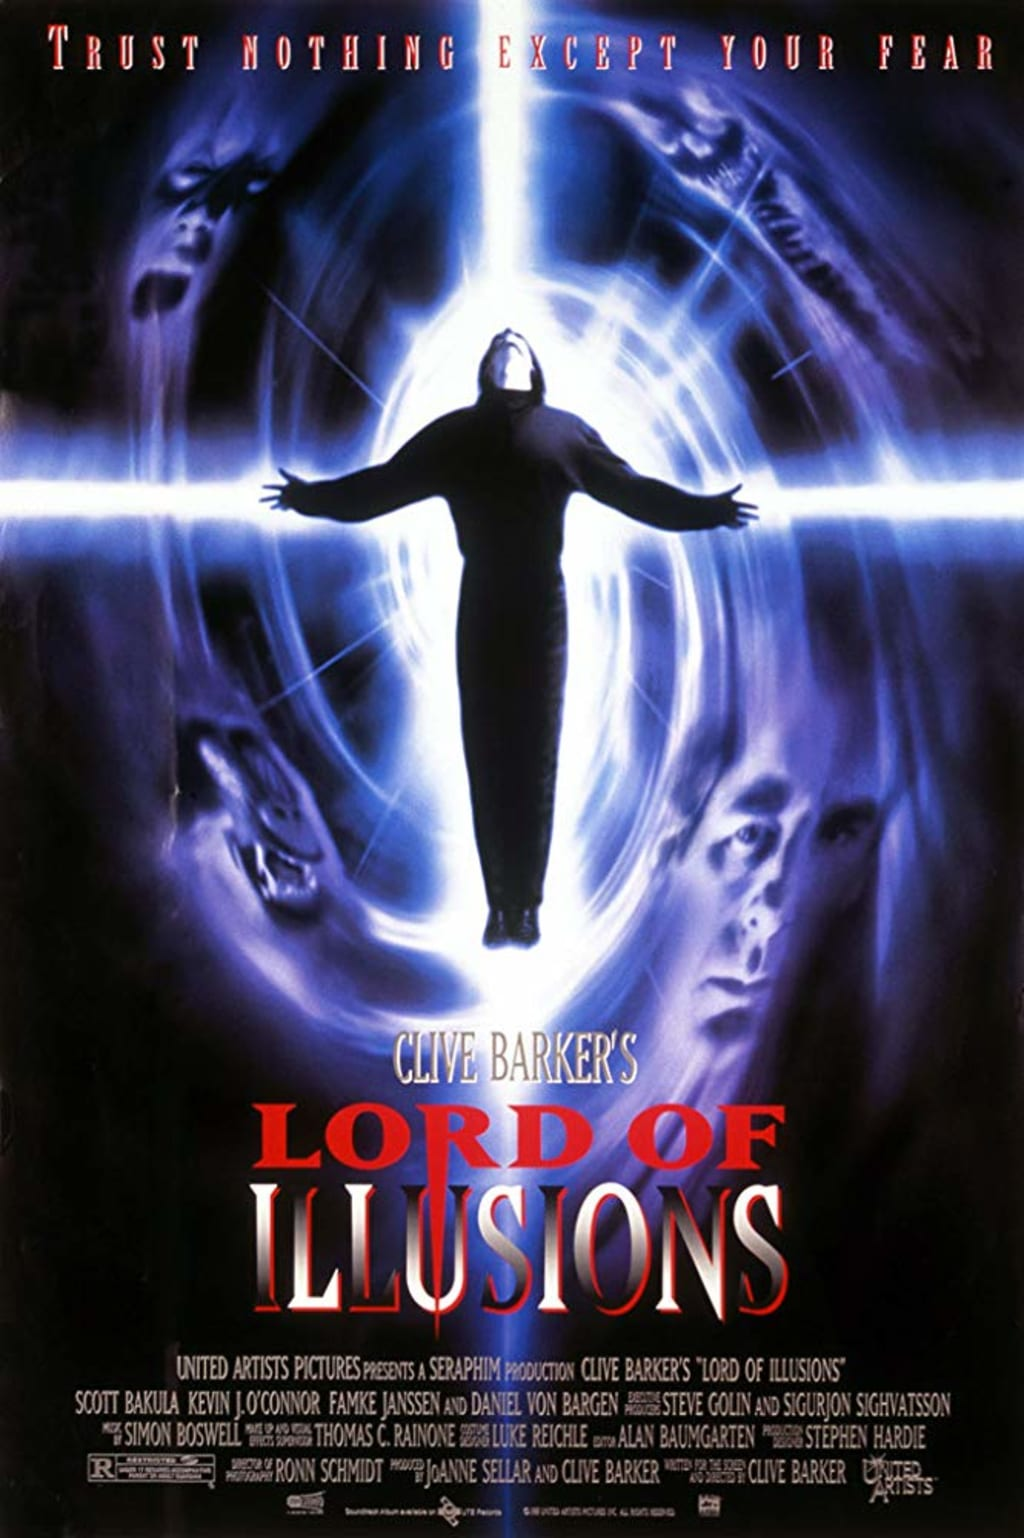 Reed Alexander's Horror Review of 'Lord of Illusions' (1995)